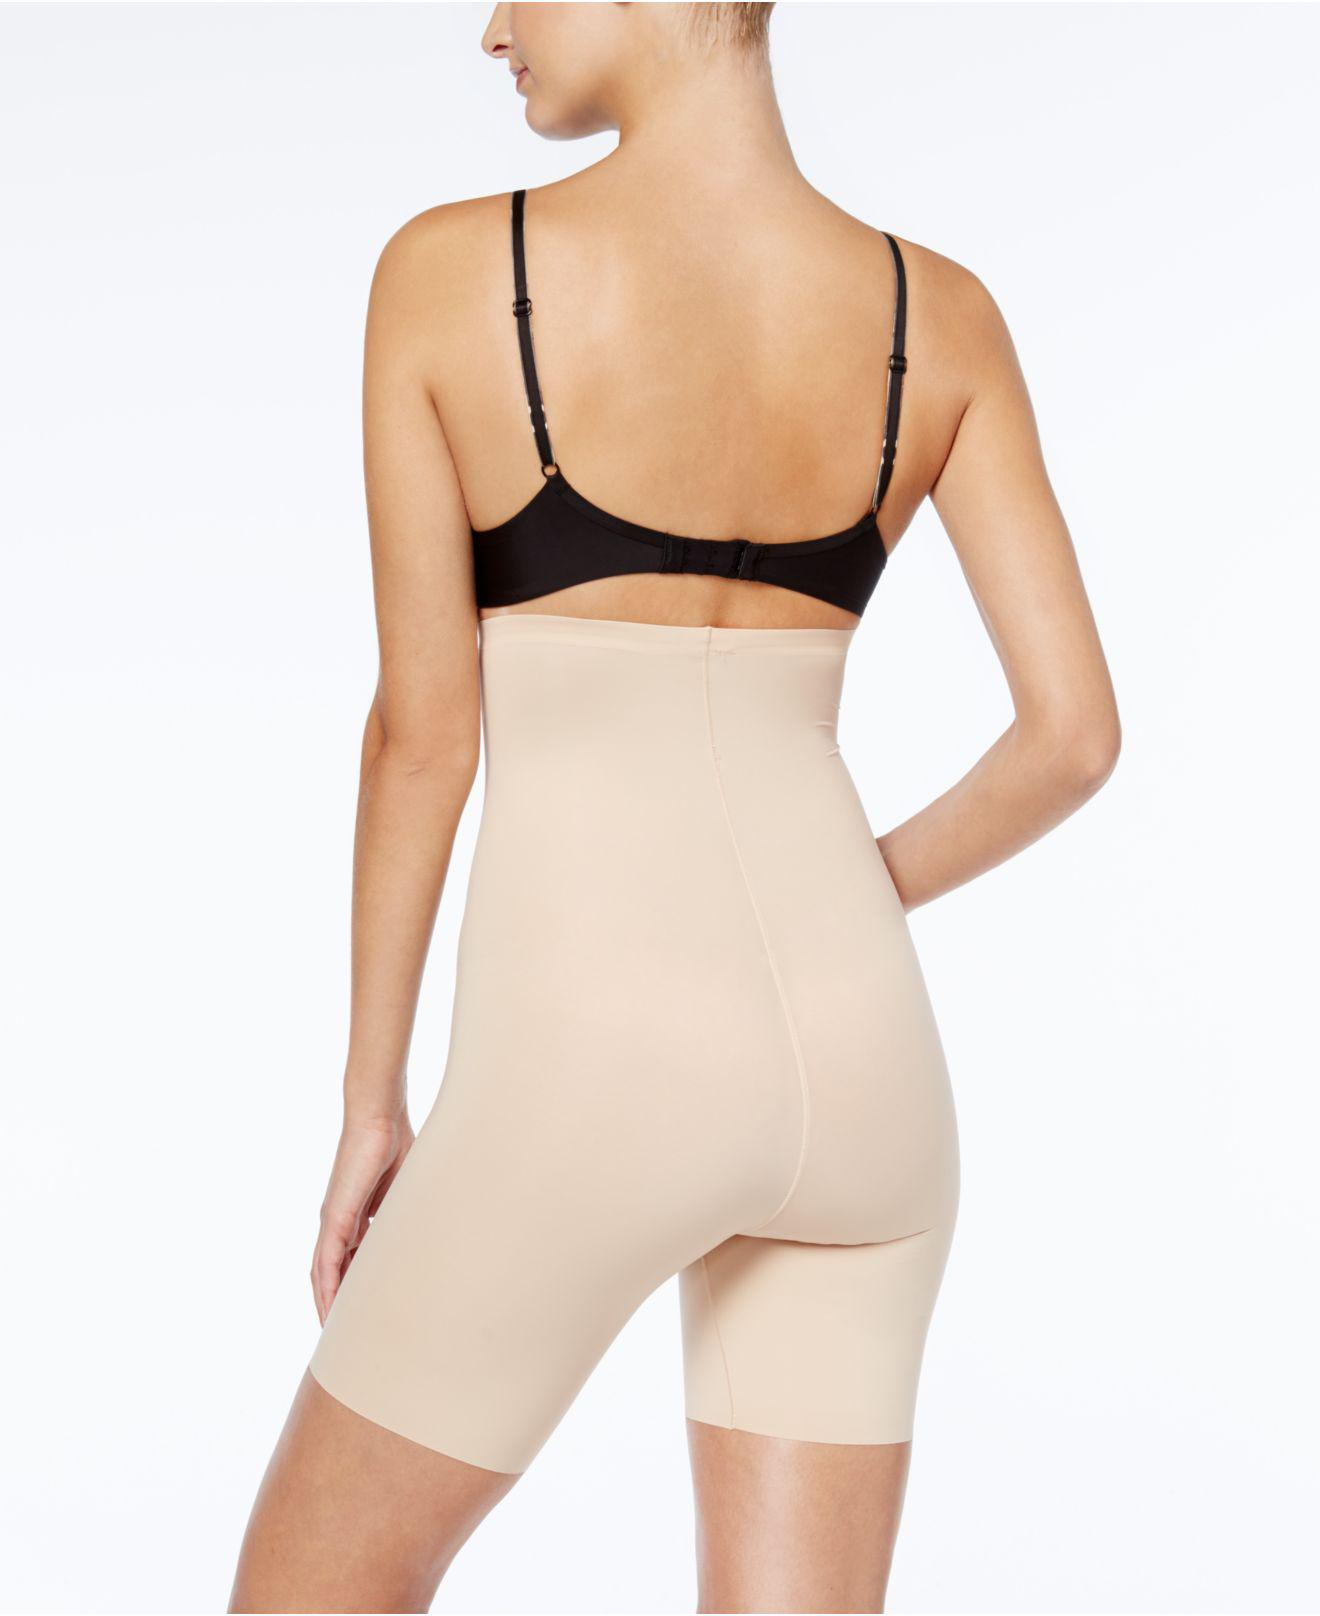 560c902c9d5 Spanx Thinstincts Firm Control High-waist Shaper Shorts 10006r in Natural -  Lyst